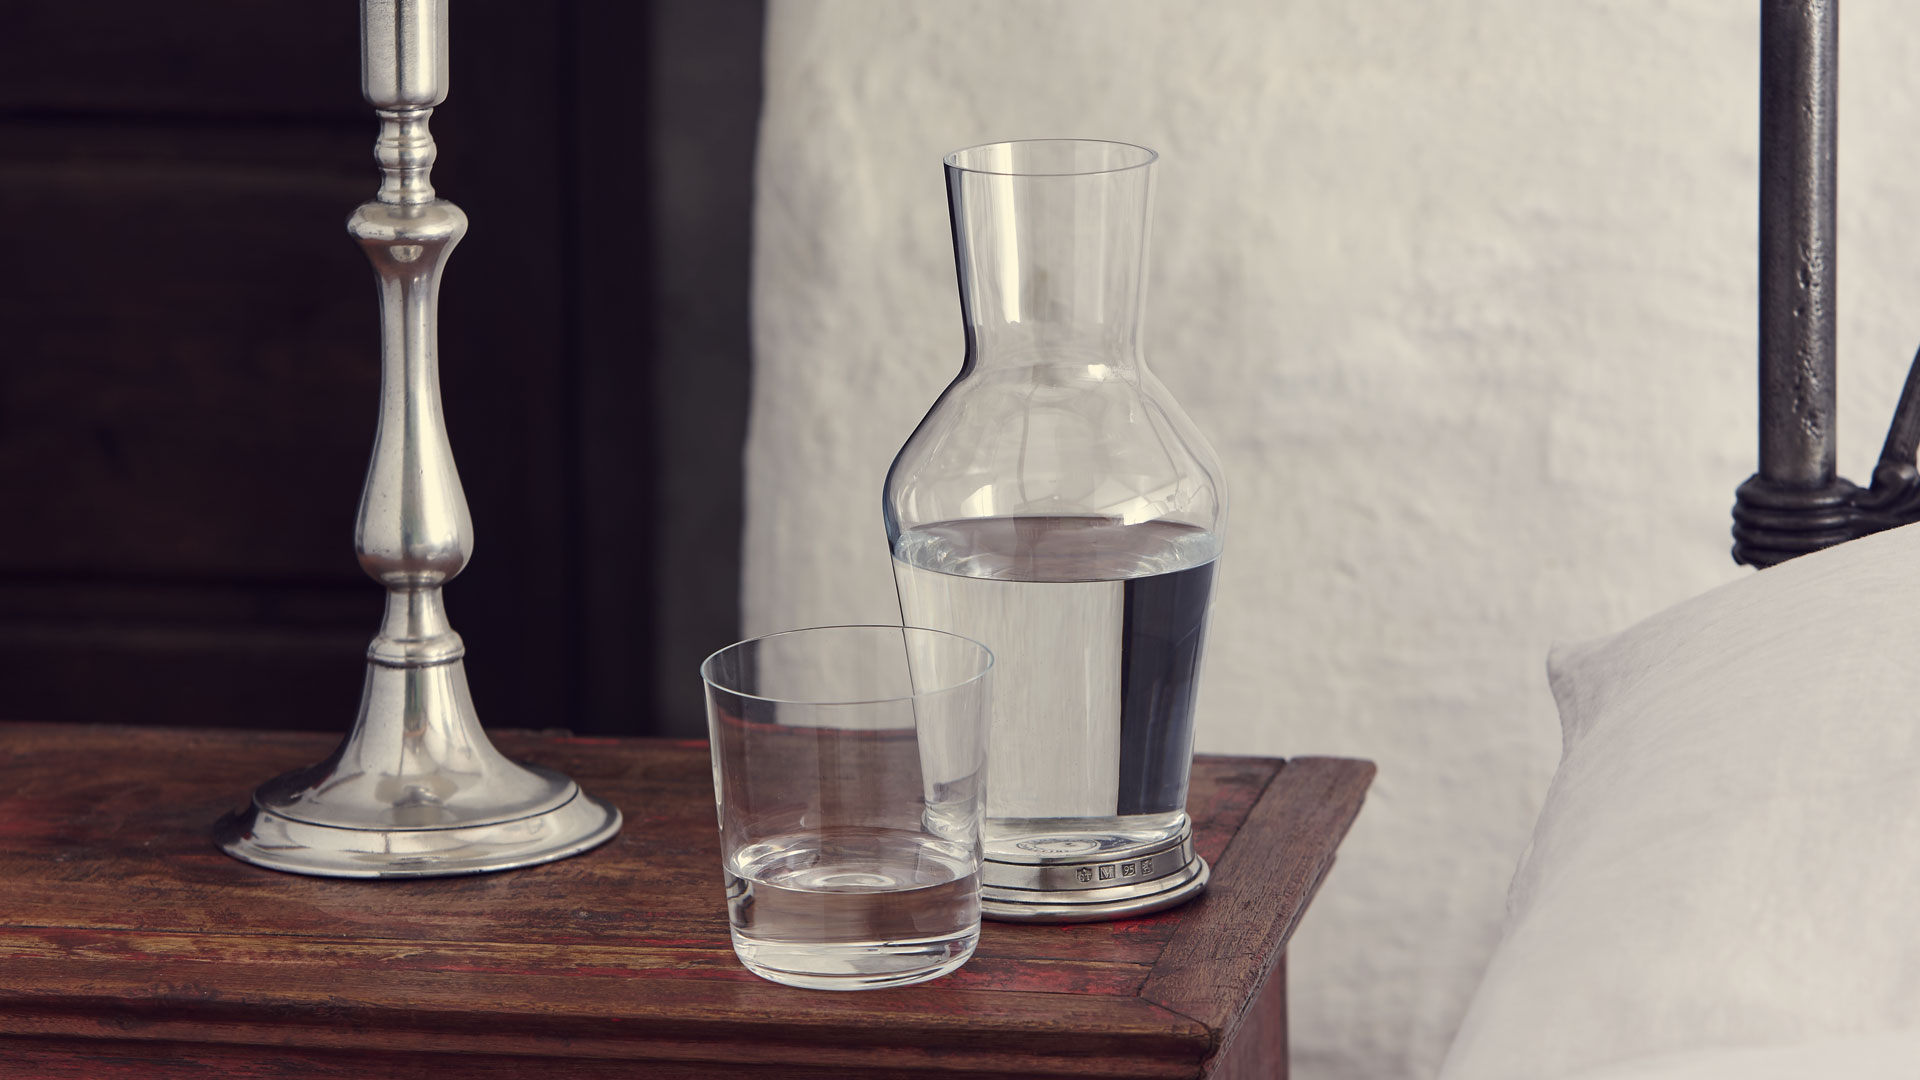 Bedside Water Carafe And Glass Bedside Carafe 43 Glass Grey Pewter And Lead Free Crystal